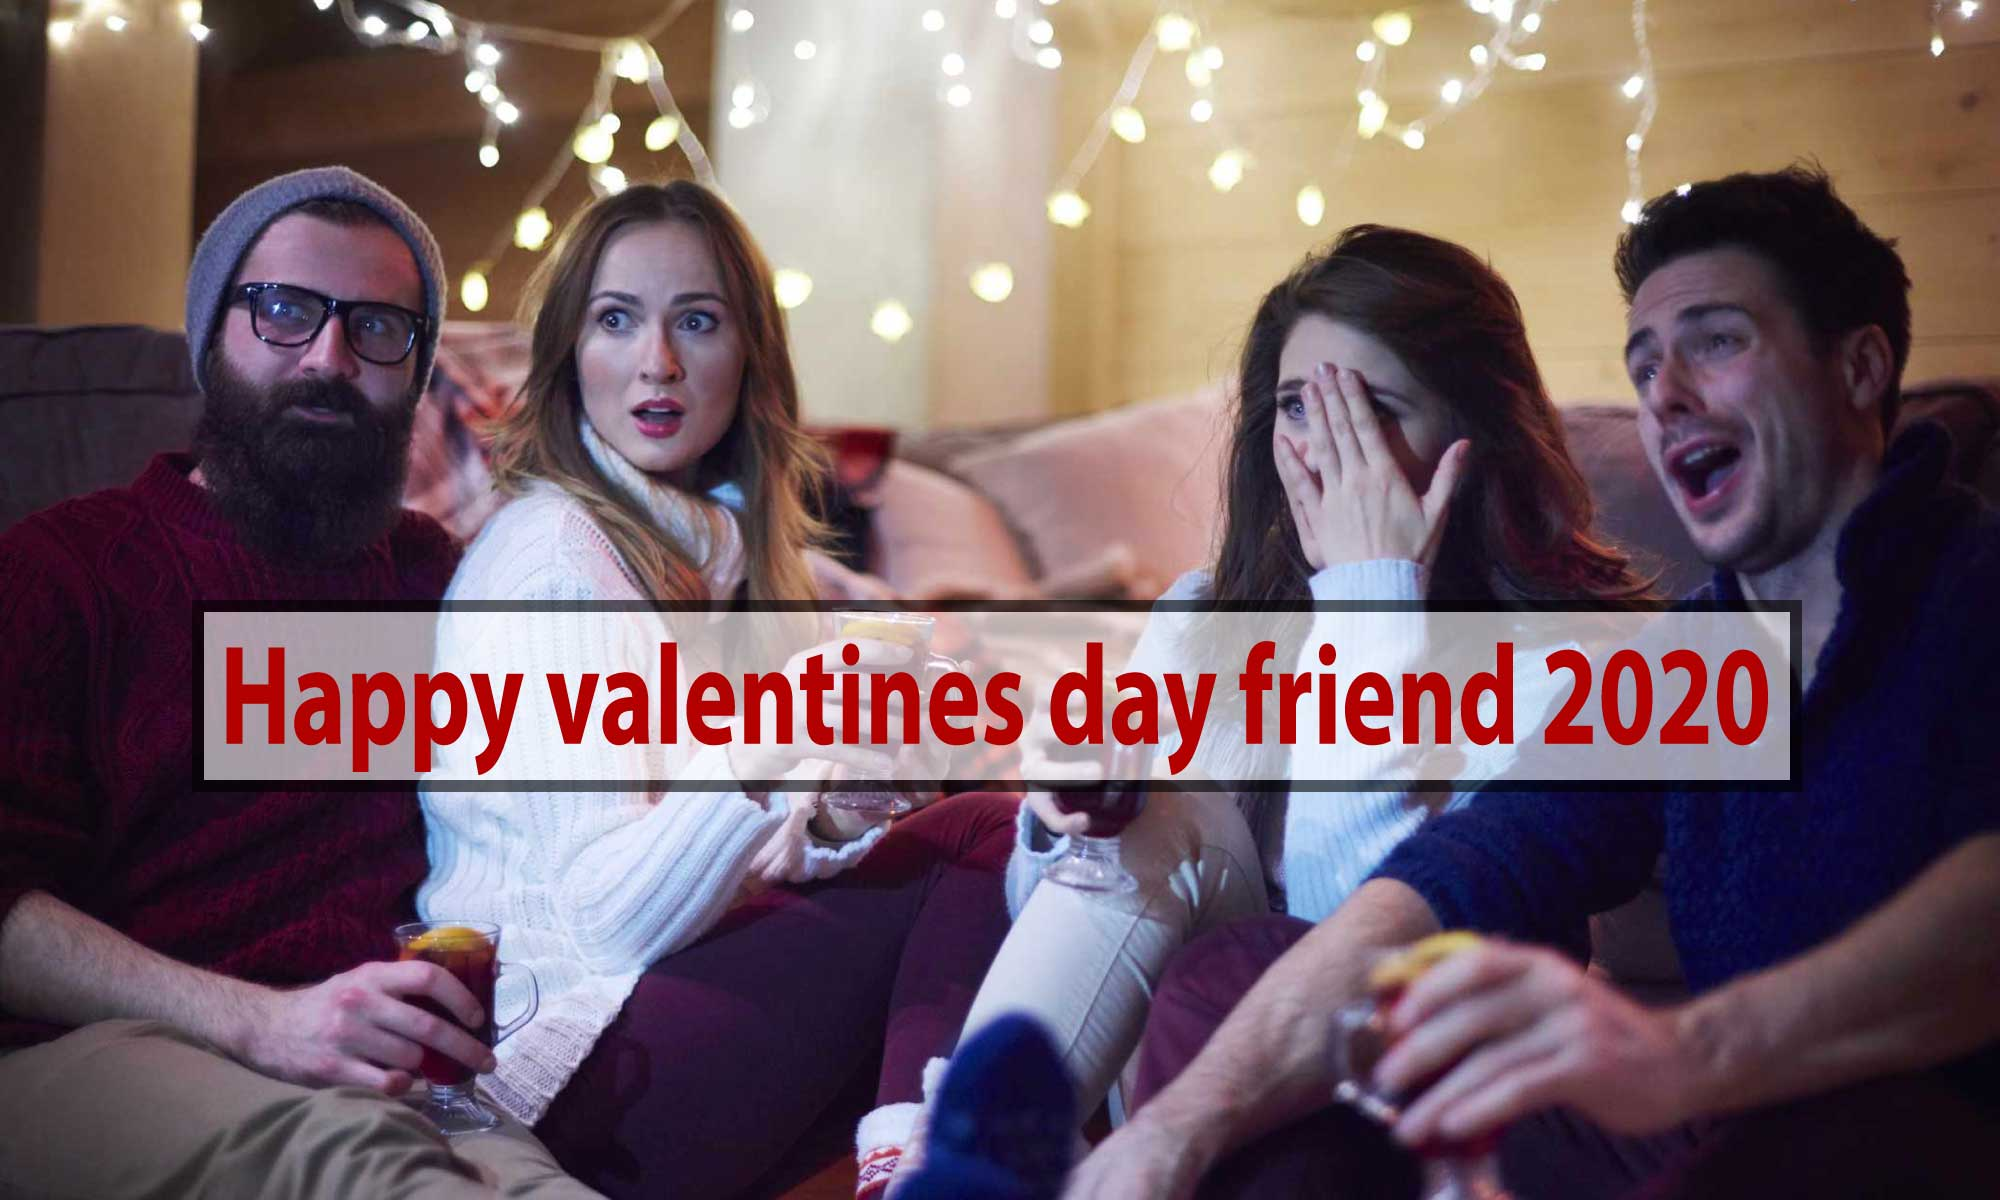 Happy-valentines-day-friend-2020